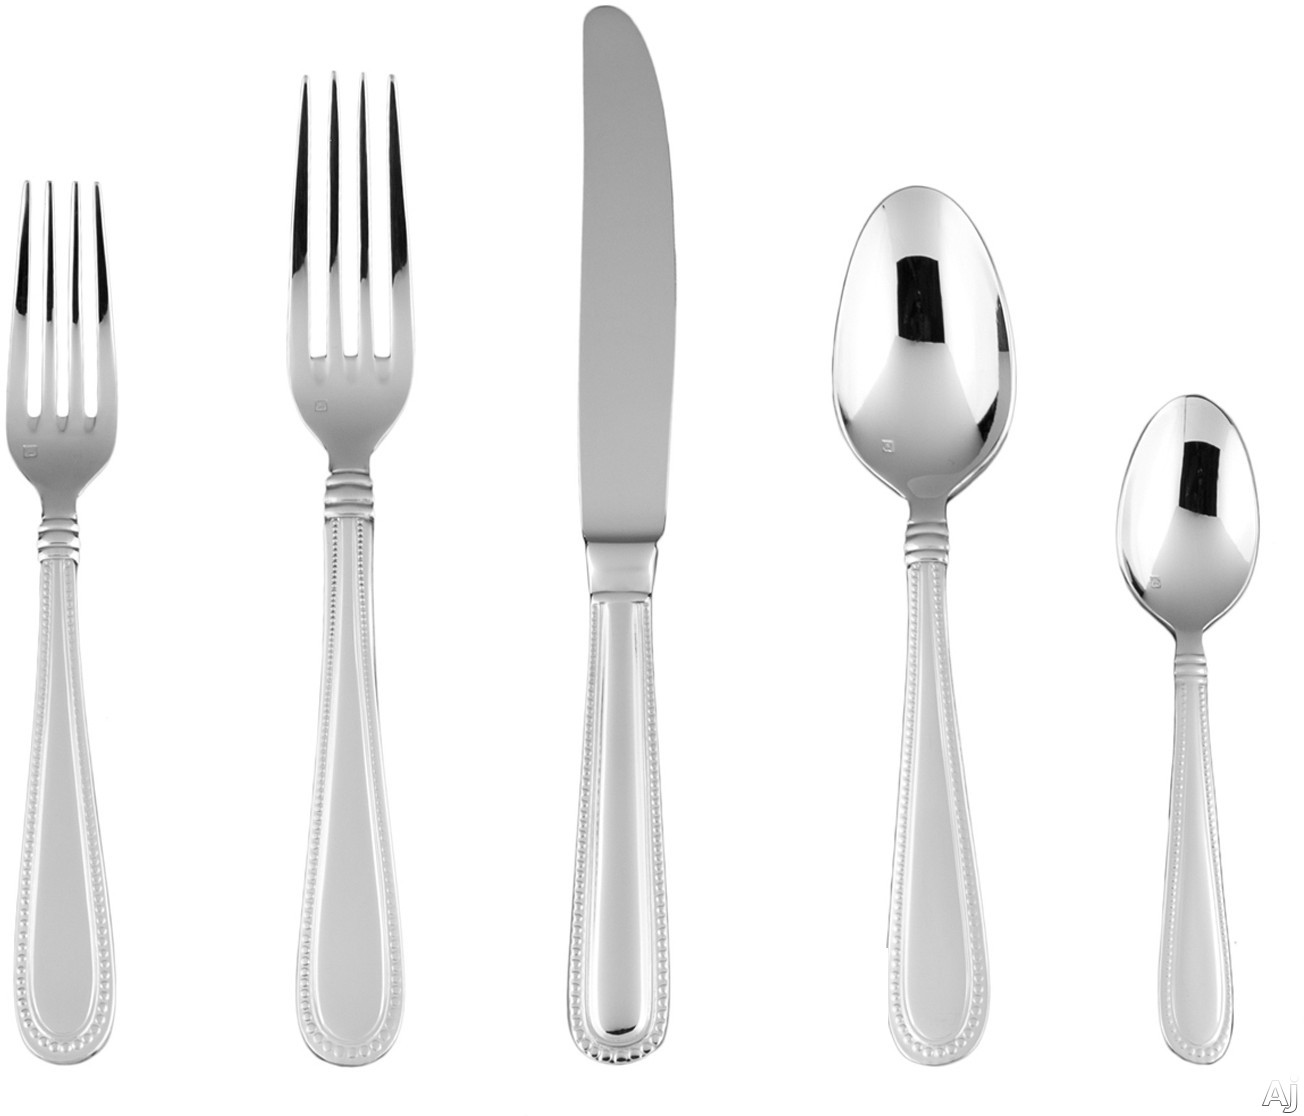 Fortessa 5PPS13620PC Caviar Stainless Steel 20-Piece Flatware Set with Heavy Gauge Stainless Steel and Balanced Design